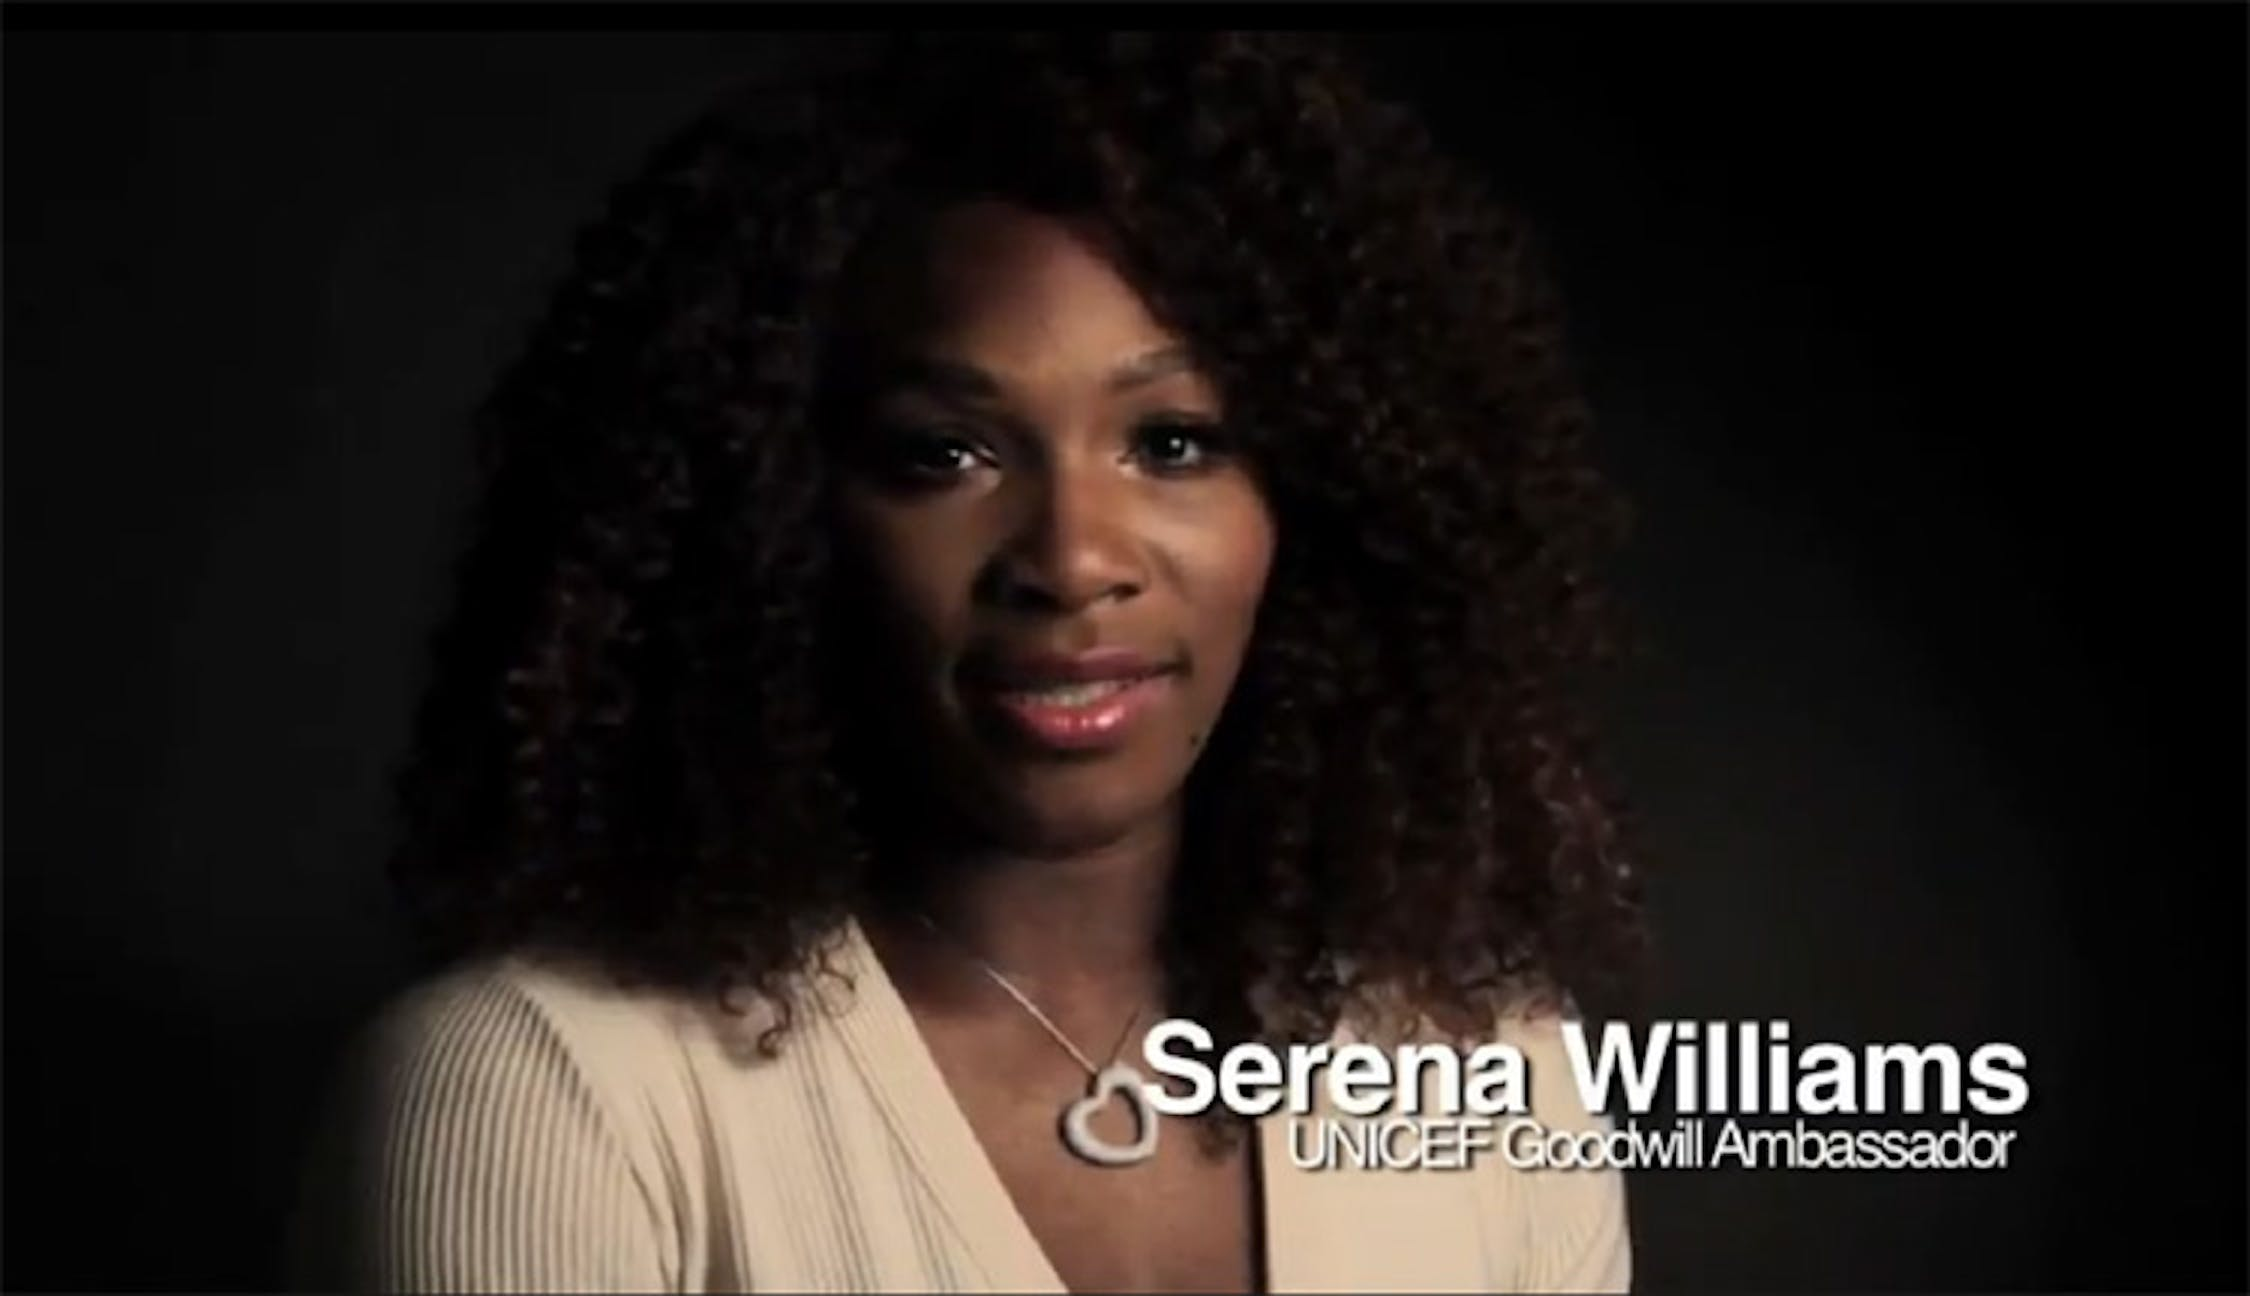 Serena Williams nel video-appello per il Corno d'Africa - ©UNICEF Video/2011